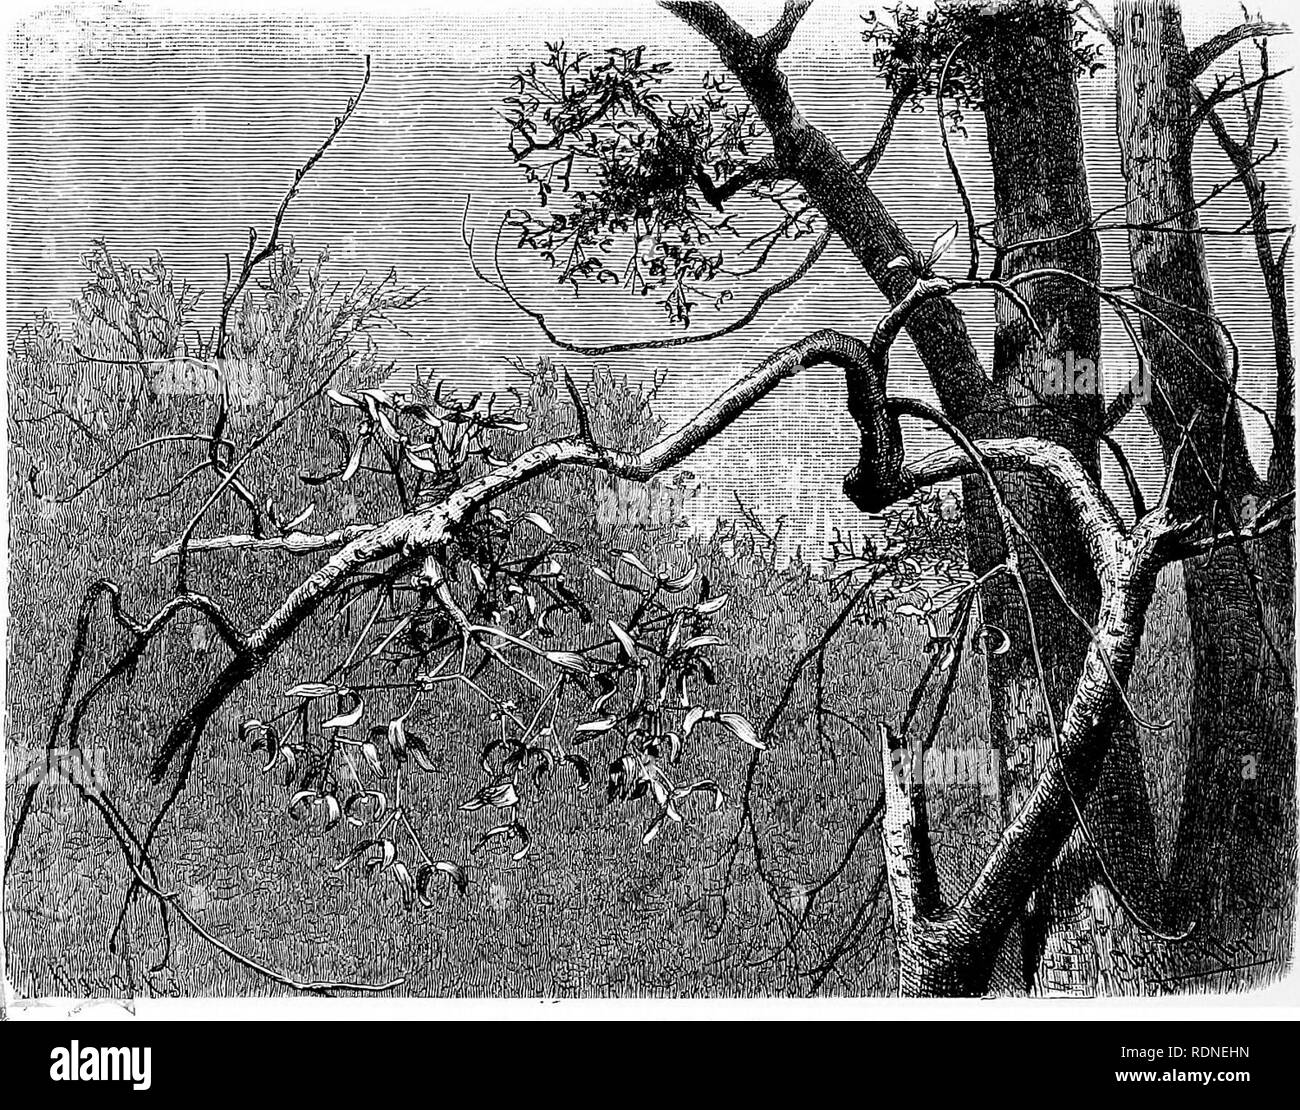 . The natural history of plants, their forms, growth, reproduction, and distribution;. Botany. 206 MISTLETOES AND LORANTHUSES. sight, is surprising, that Mistletoe-plants are rarely seated upon the upper surface of branches, but very frequently on the sides. For the dung of thrushes, which live upon Mistletoe-berries, is in the form of a semi-fluid, highly viscid mass, ductile like bird-lime; and, even when it is deposited upon the upper surface of slanting branches, it immediately runs down the sides, sometimes extending in ropes 20 or 30 centimeters in length. Owing to the viscous mass thus  - Stock Image